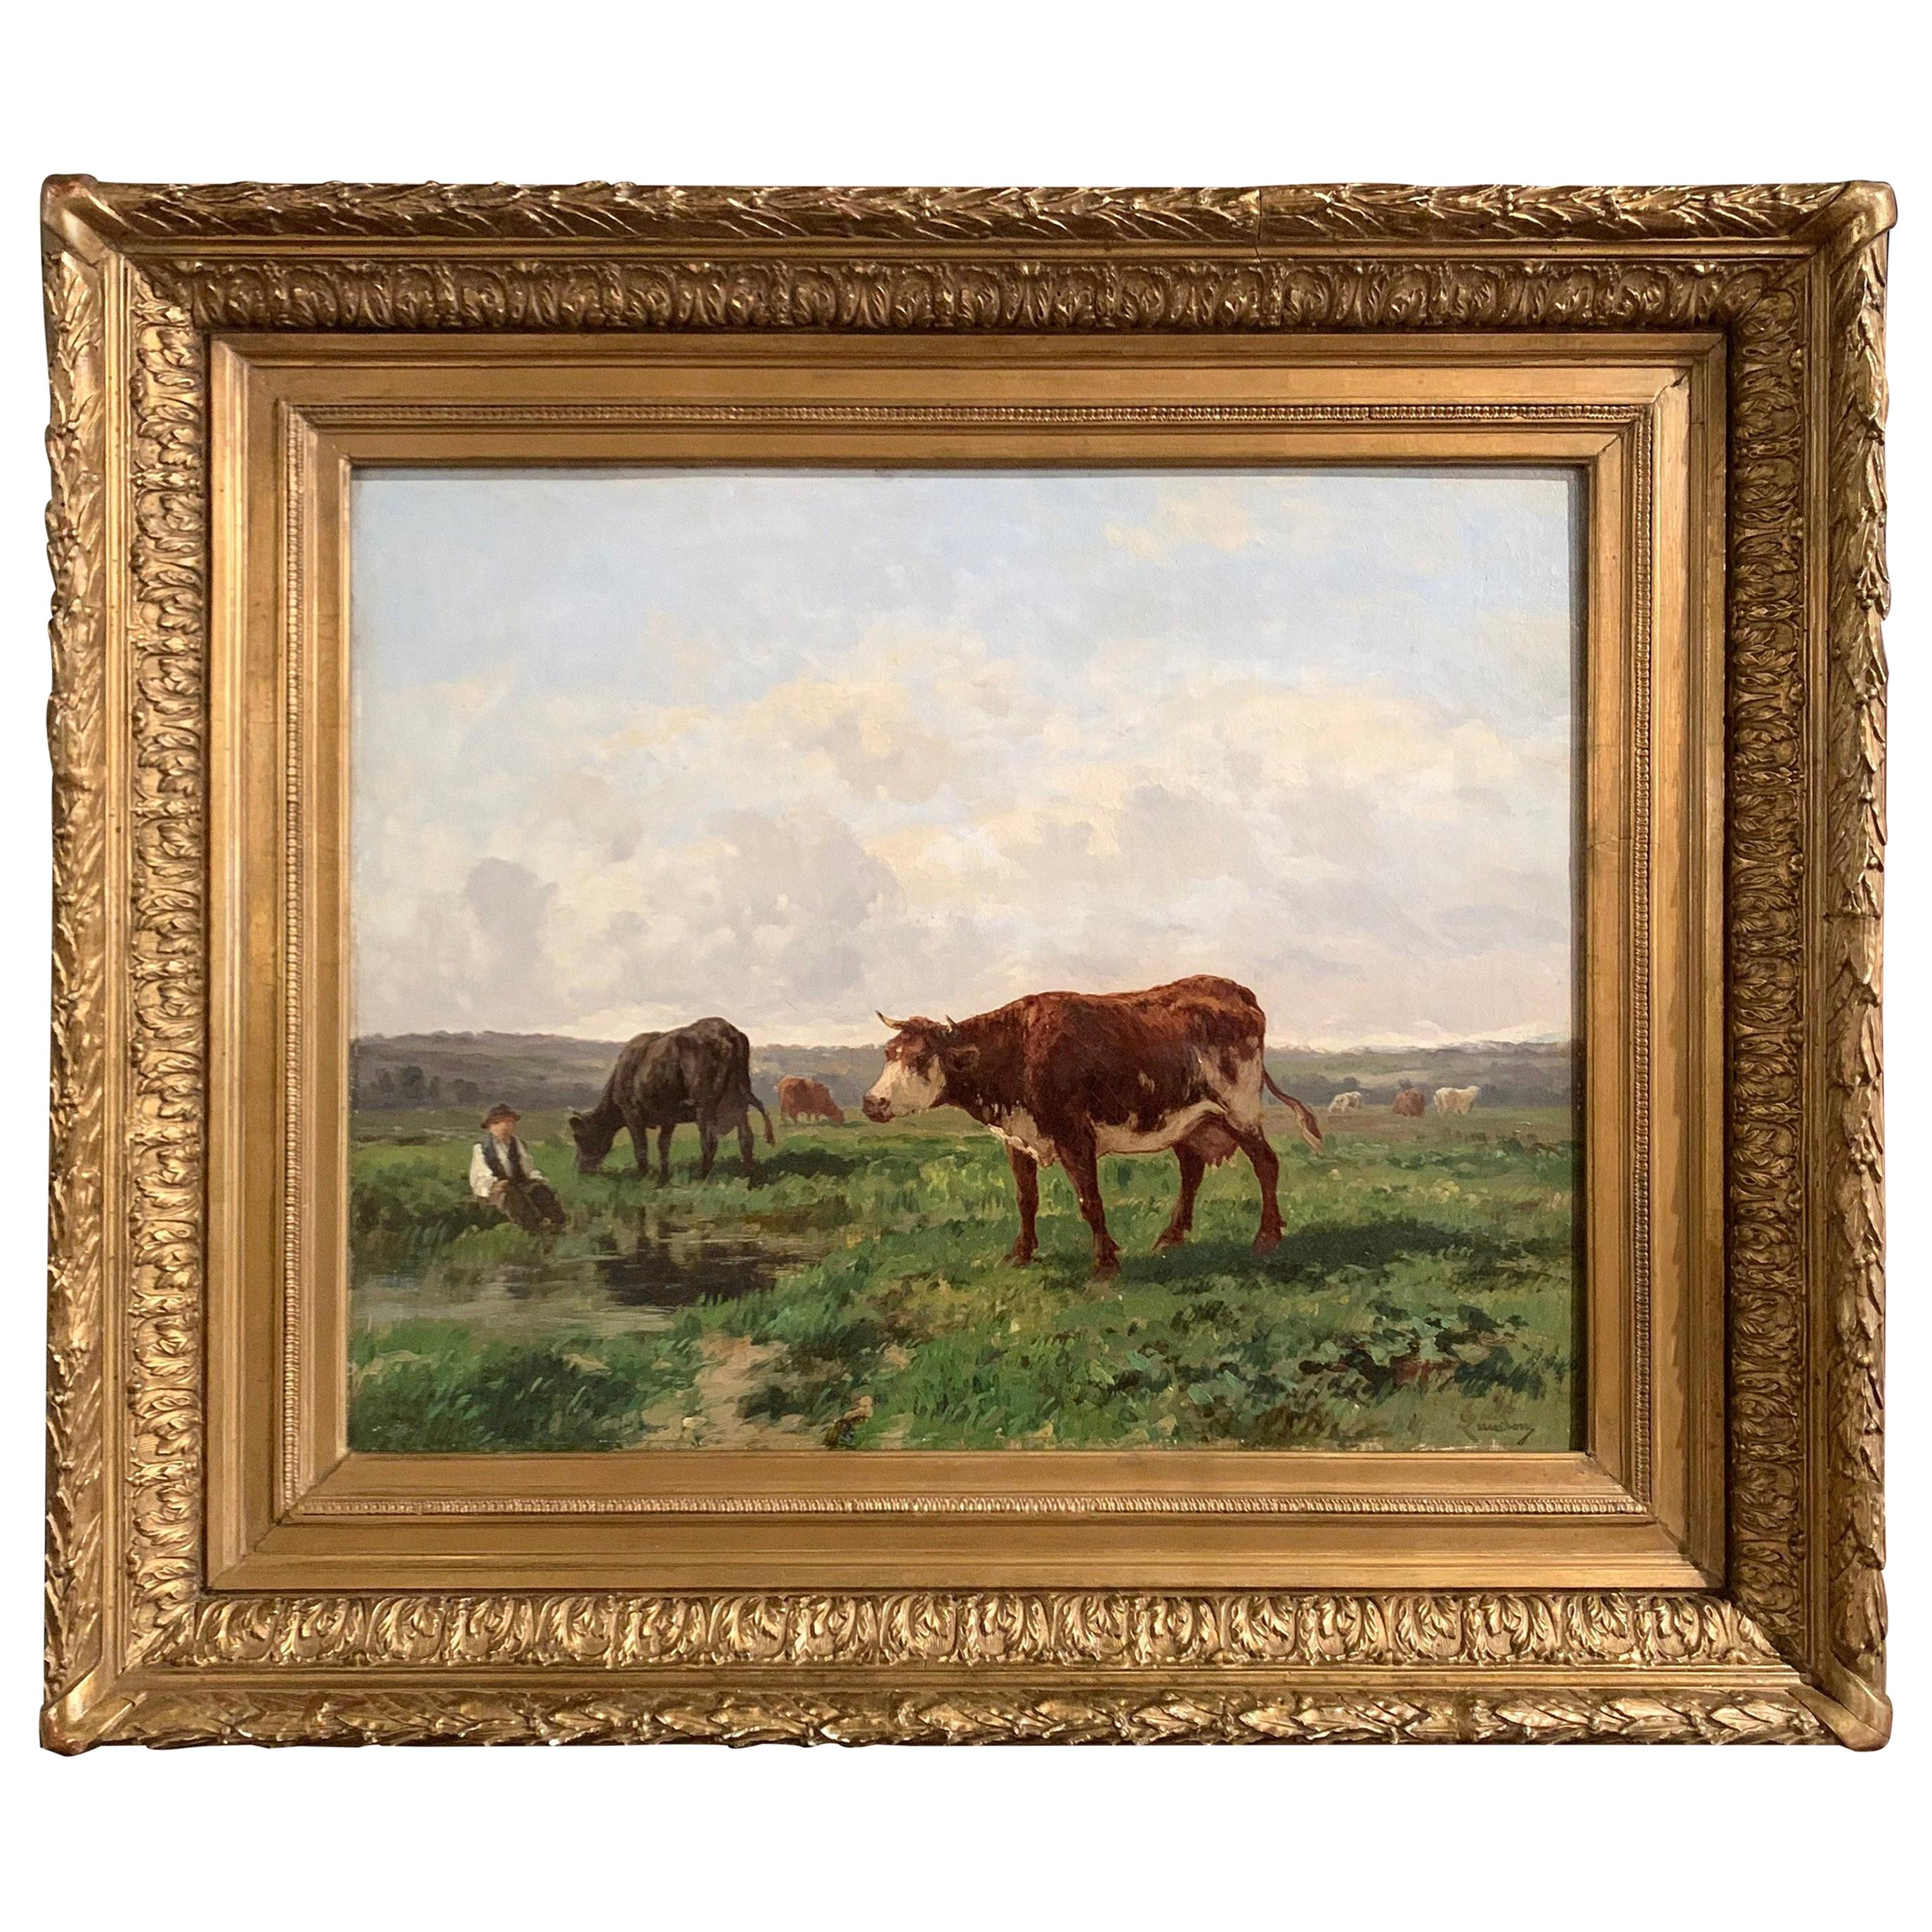 19th Century French Cows Oil Painting in Carved Gilt Frame Signed C. Quinton